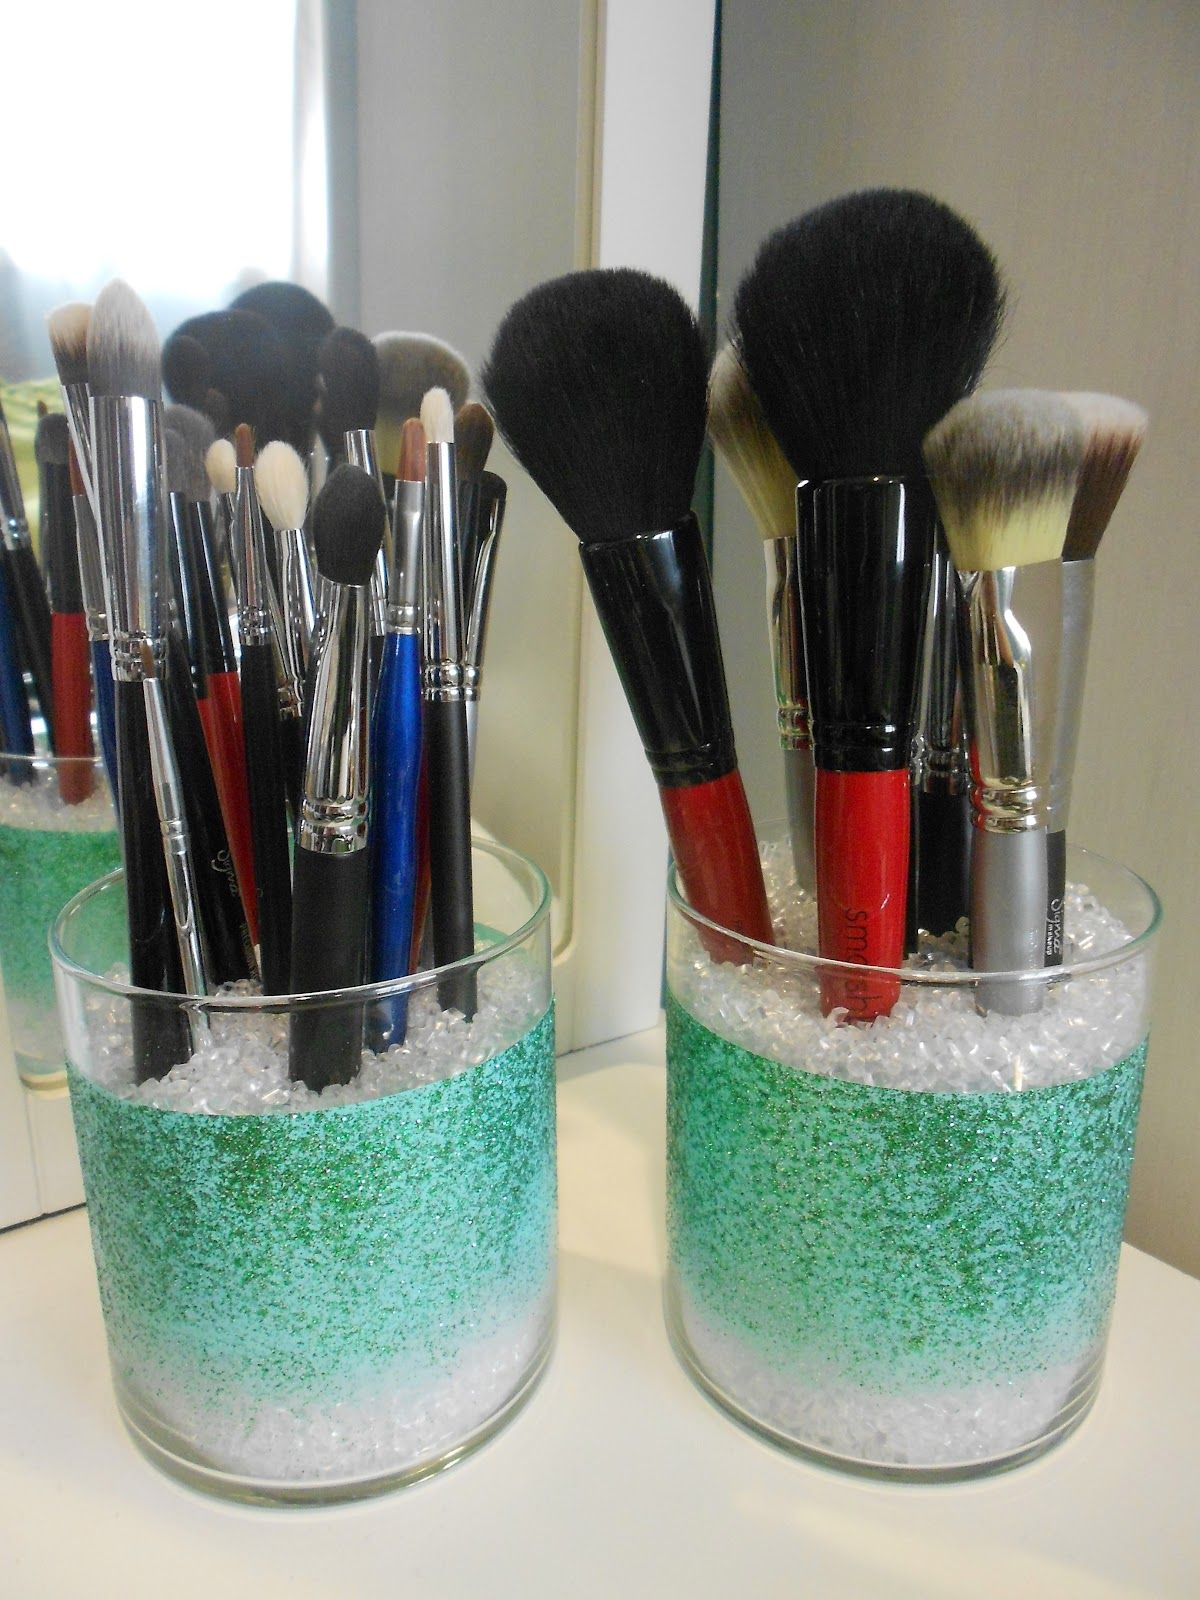 MAKEUP BRUSH HOLDERS Makeup brush holders, Makeup, Brush